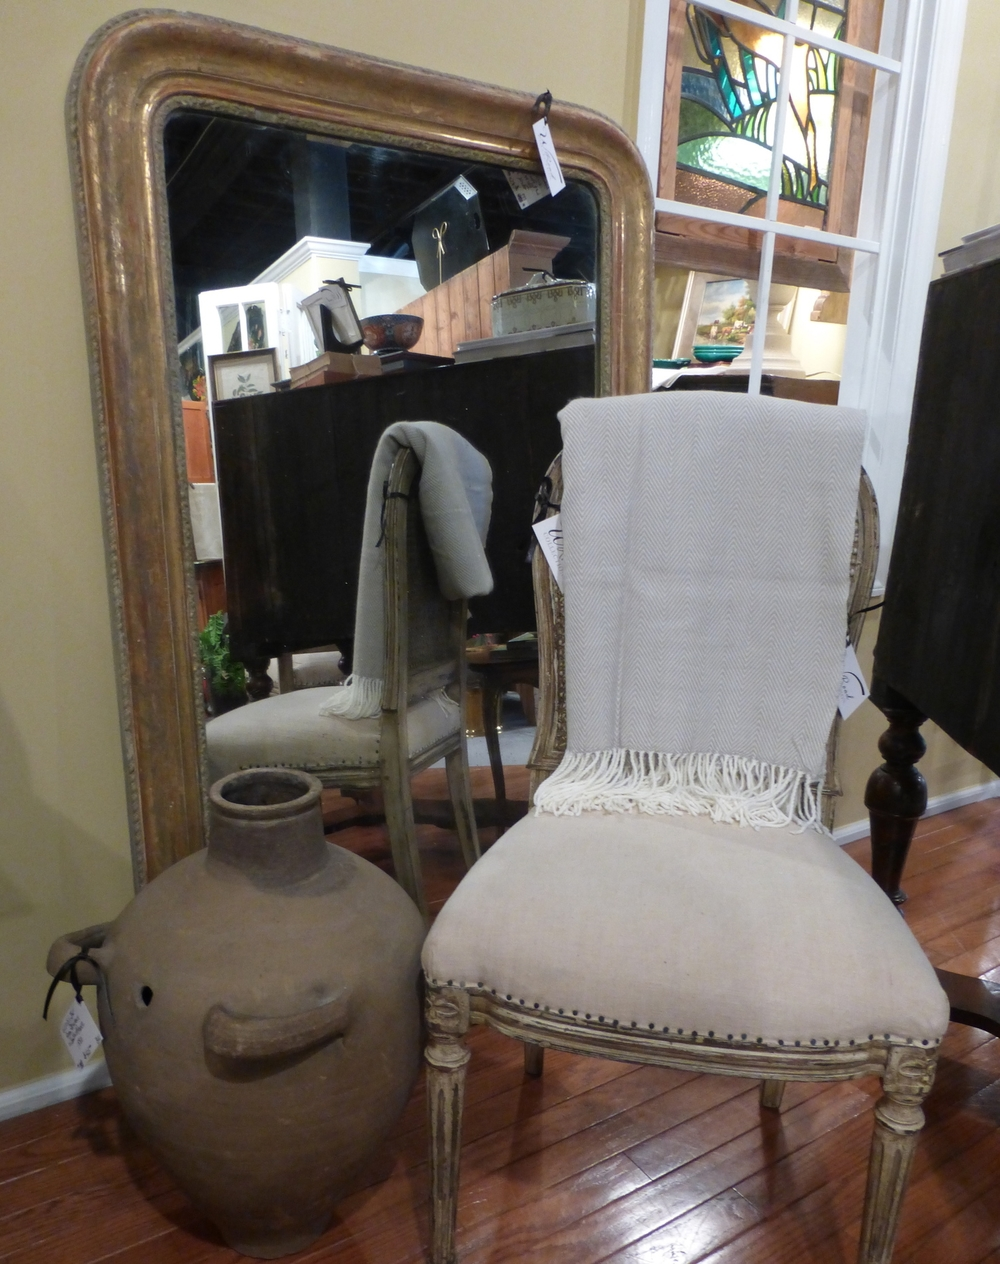 1830's Louise Philippe Mirror propped behind a mid 20th century chair in the Empire style and a 1880's Provencal jar.